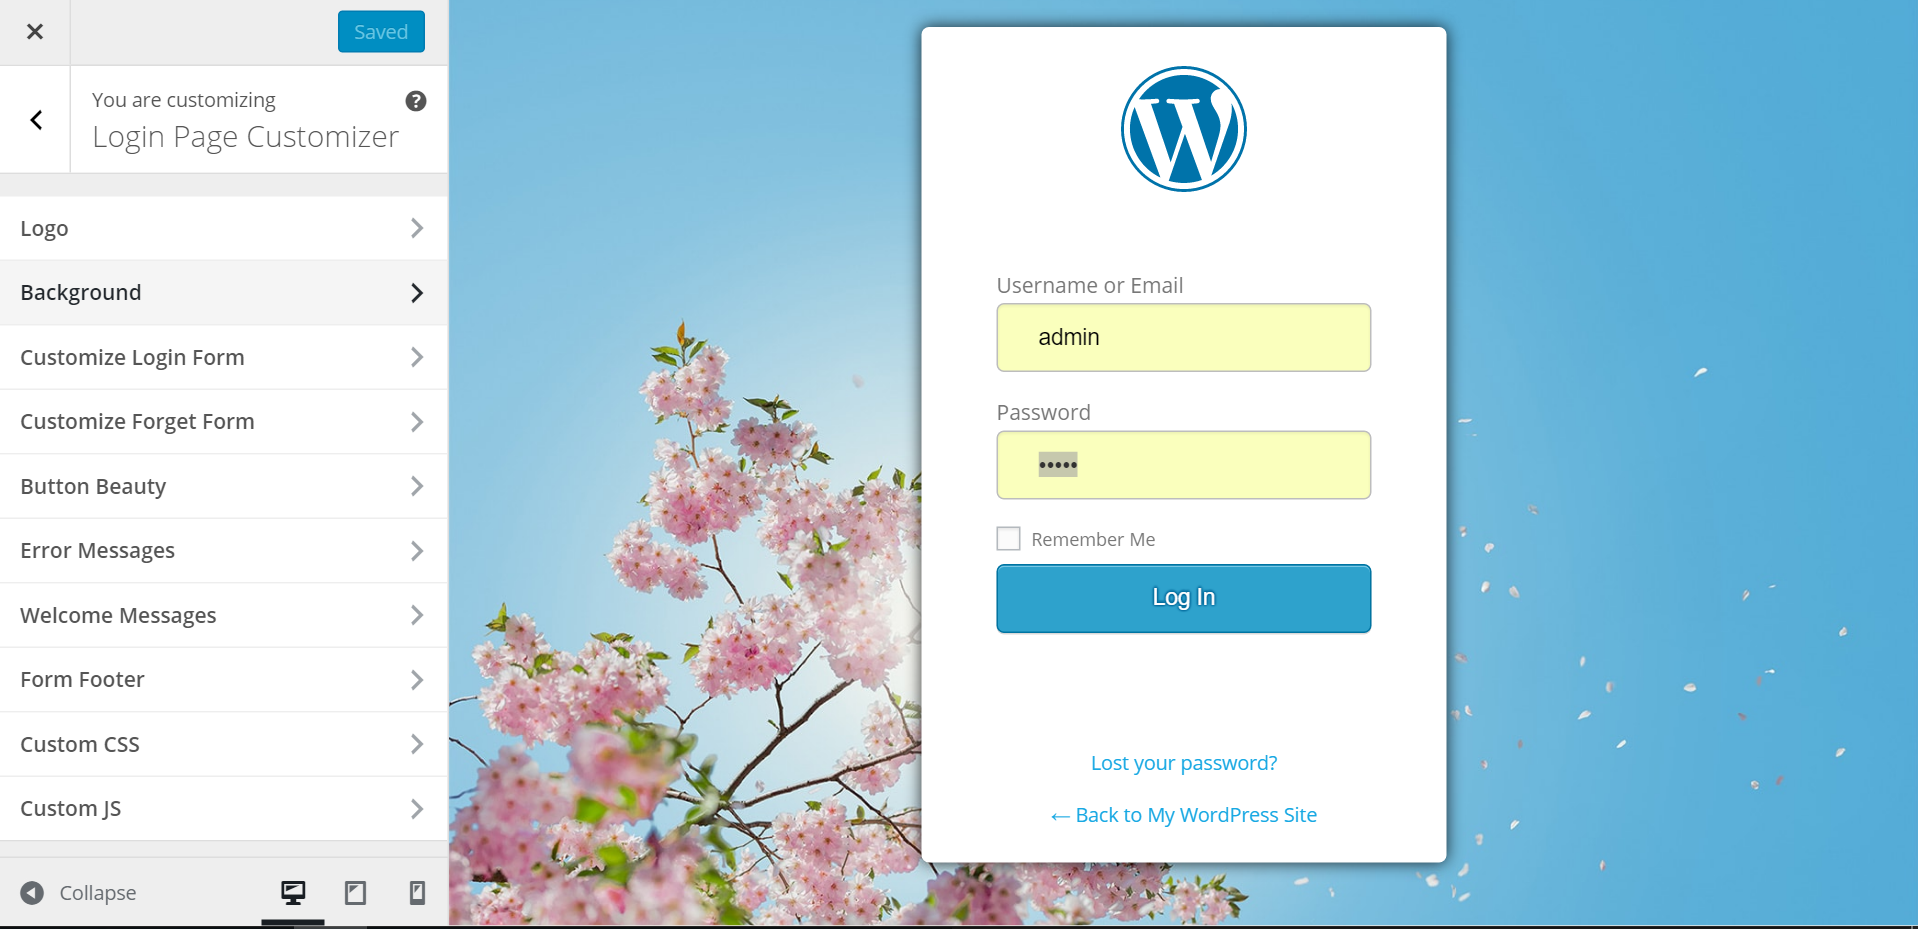 Download Custom Login Page Customizer | LoginPress 1.1.12 – Free WordPress Plugin